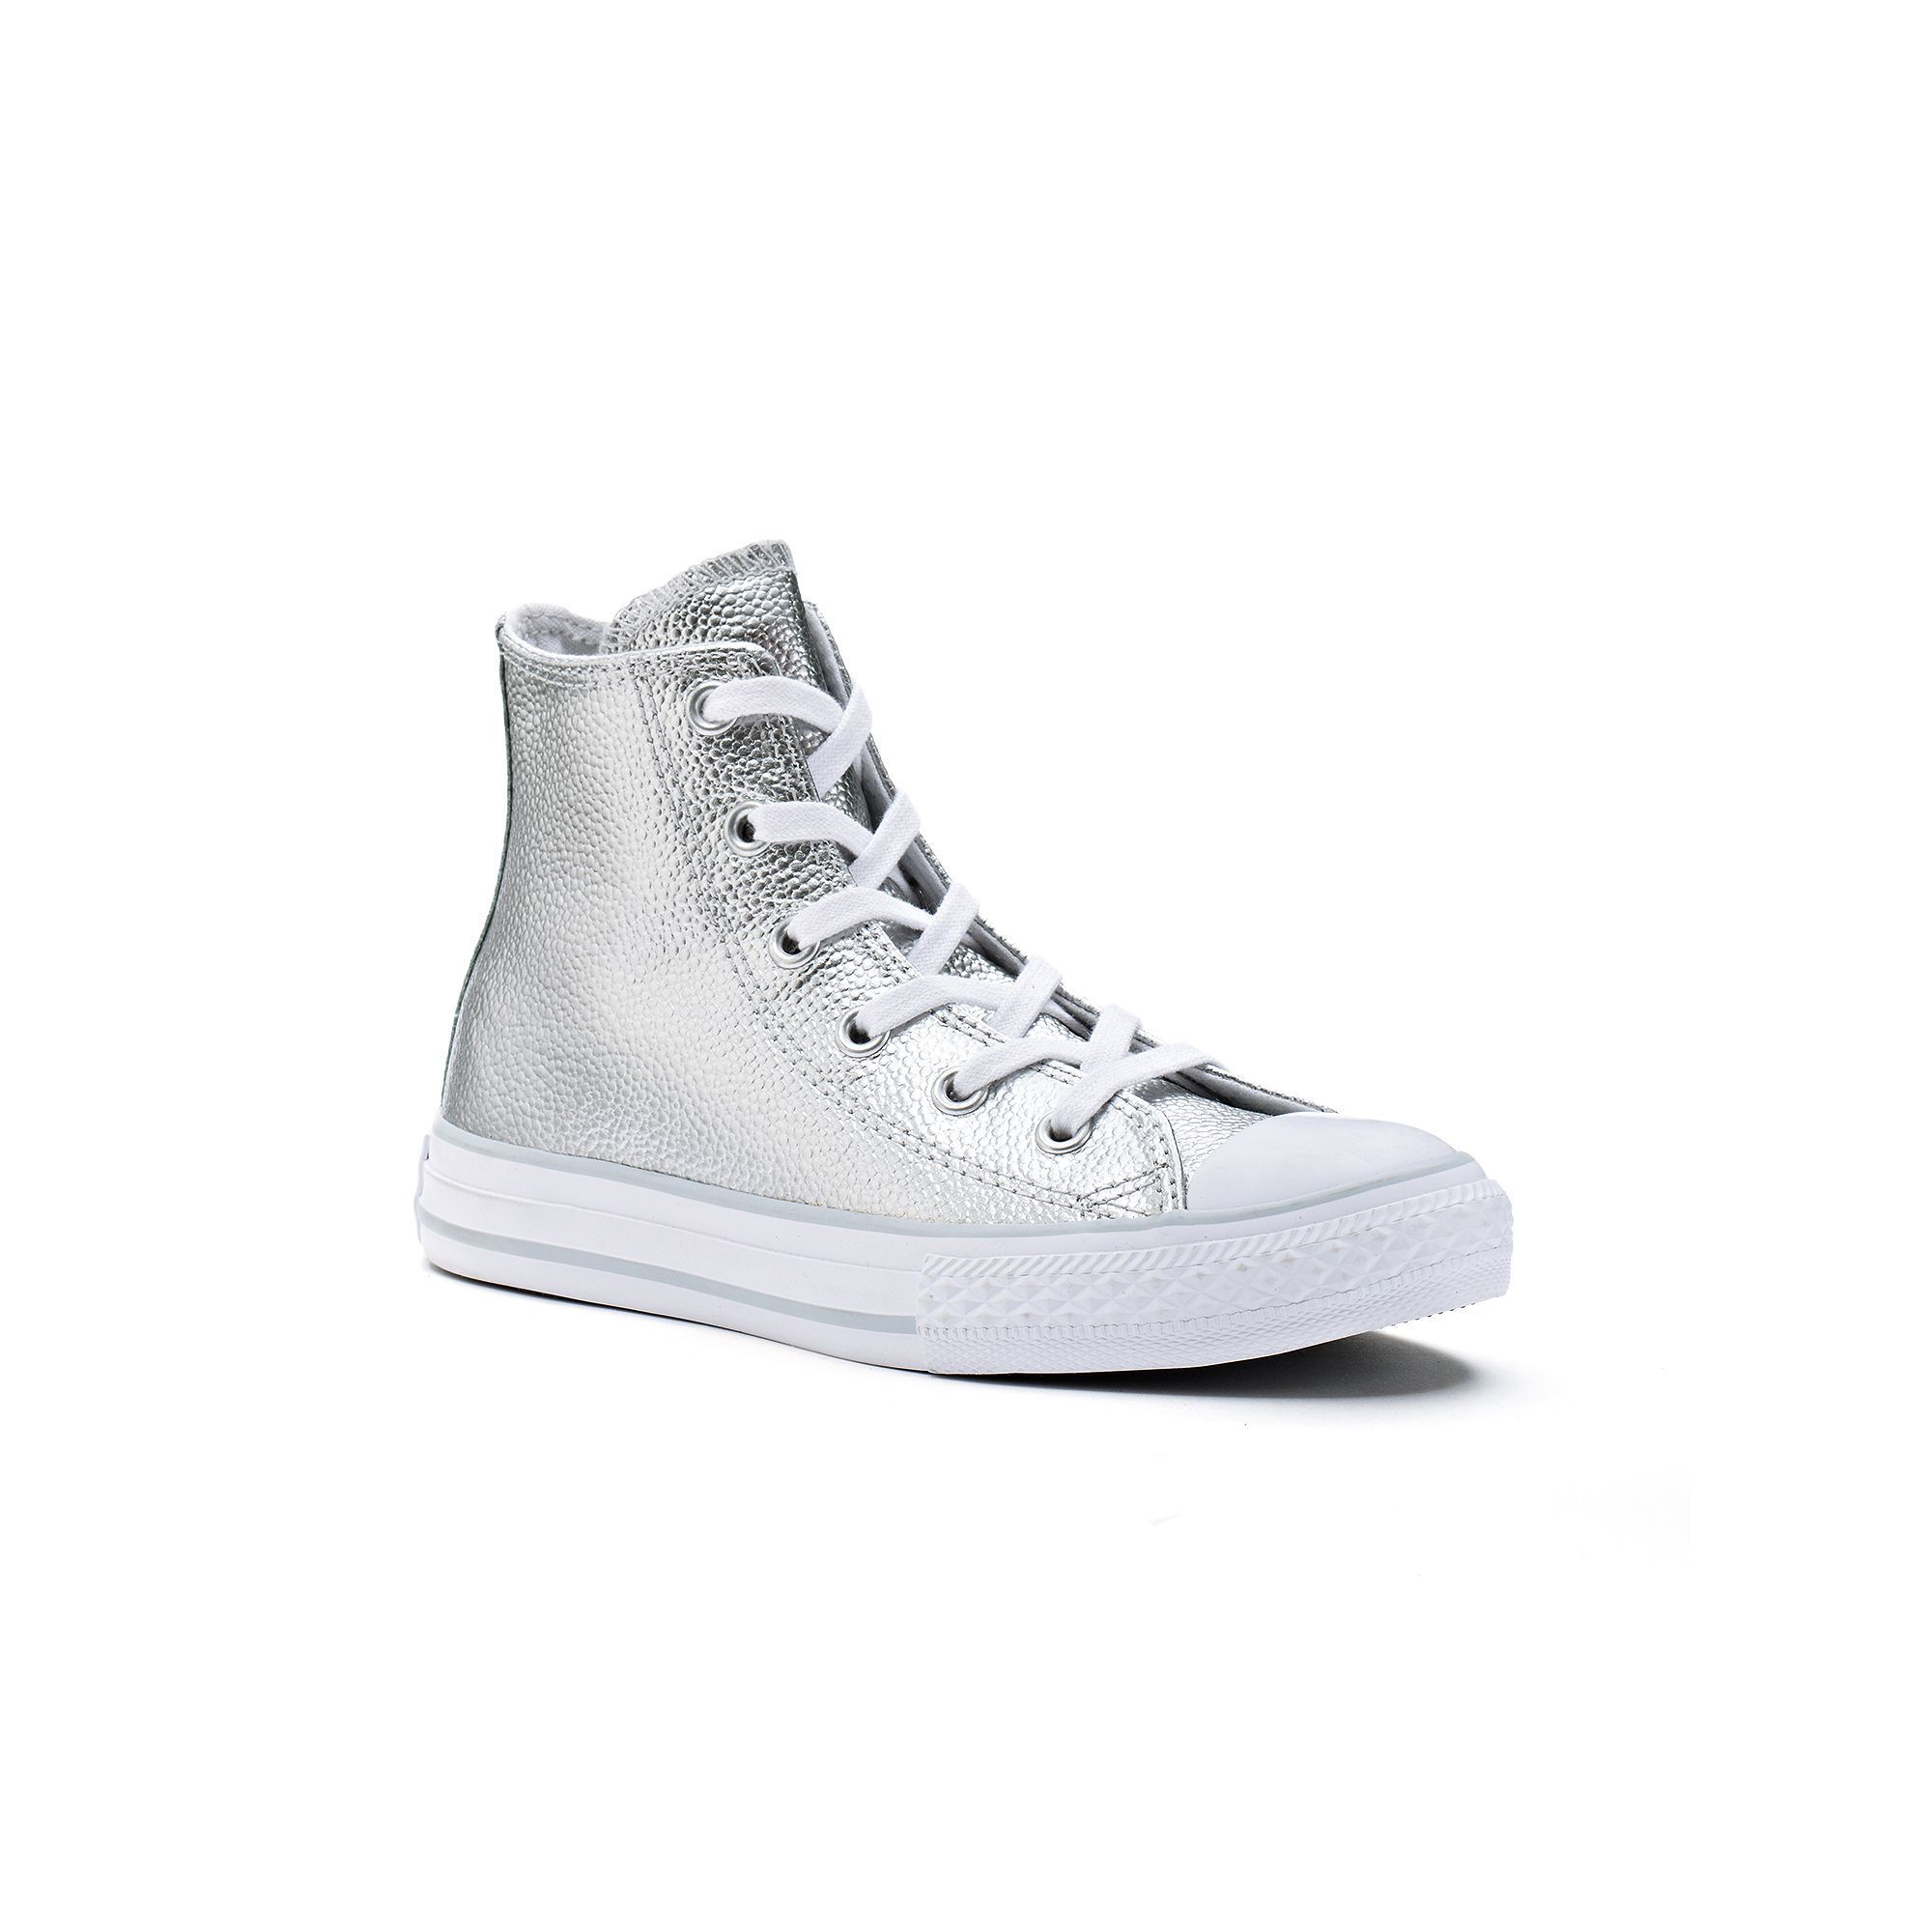 Kid's Converse Chuck Taylor All Star Stingray Leather High